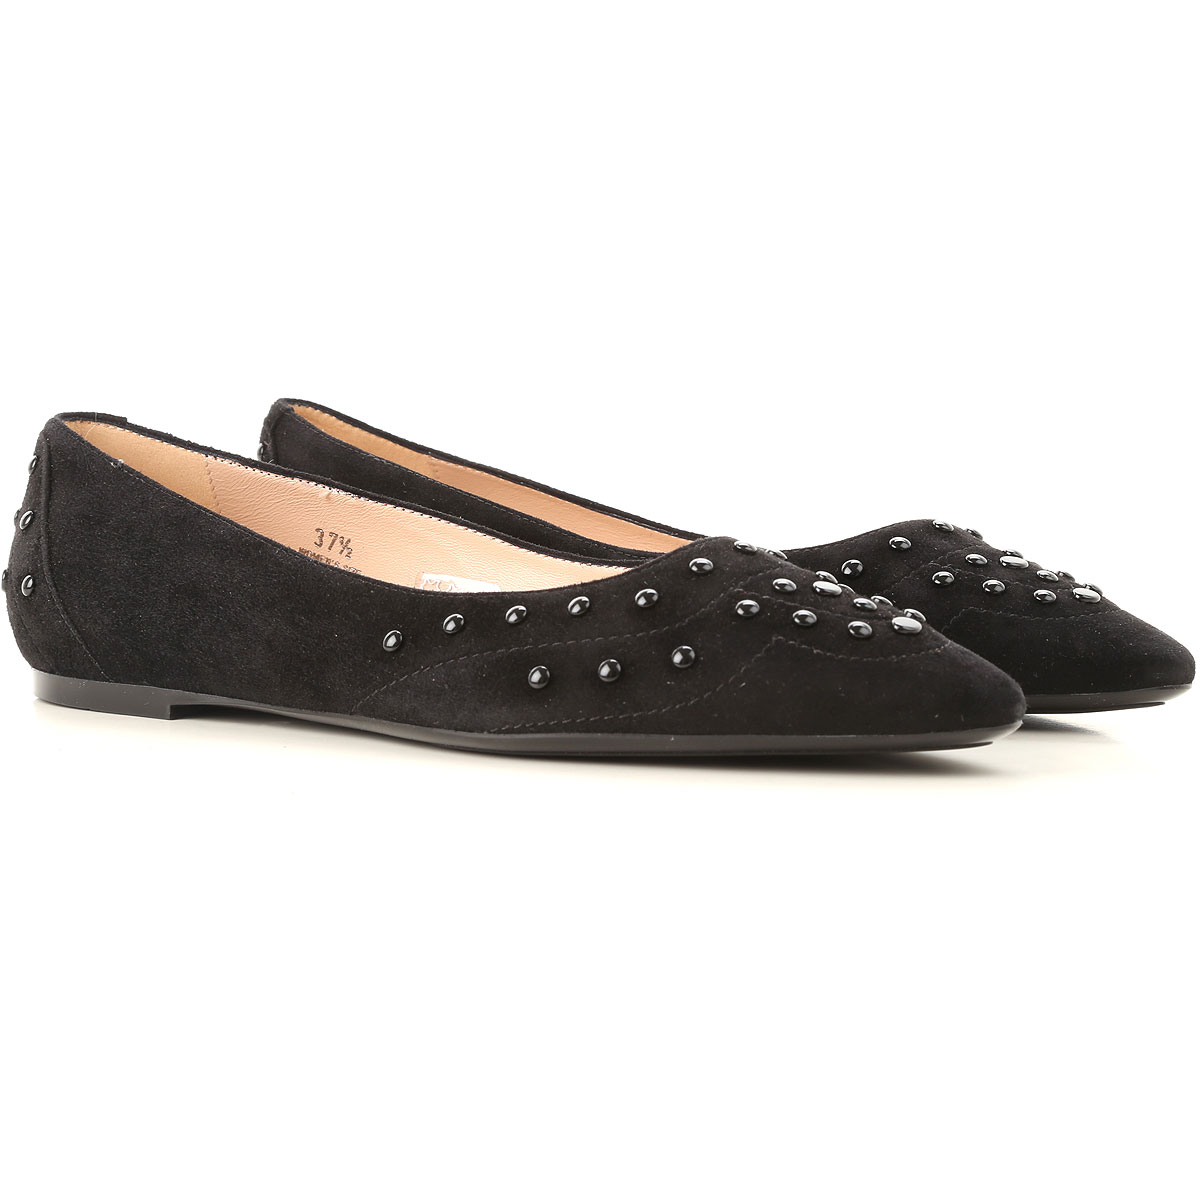 Image of Tods Ballet Flats Ballerina Shoes for Women, Black, Suede leather, 2017, 10 6 6.5 7 8 8.5 9 9.5